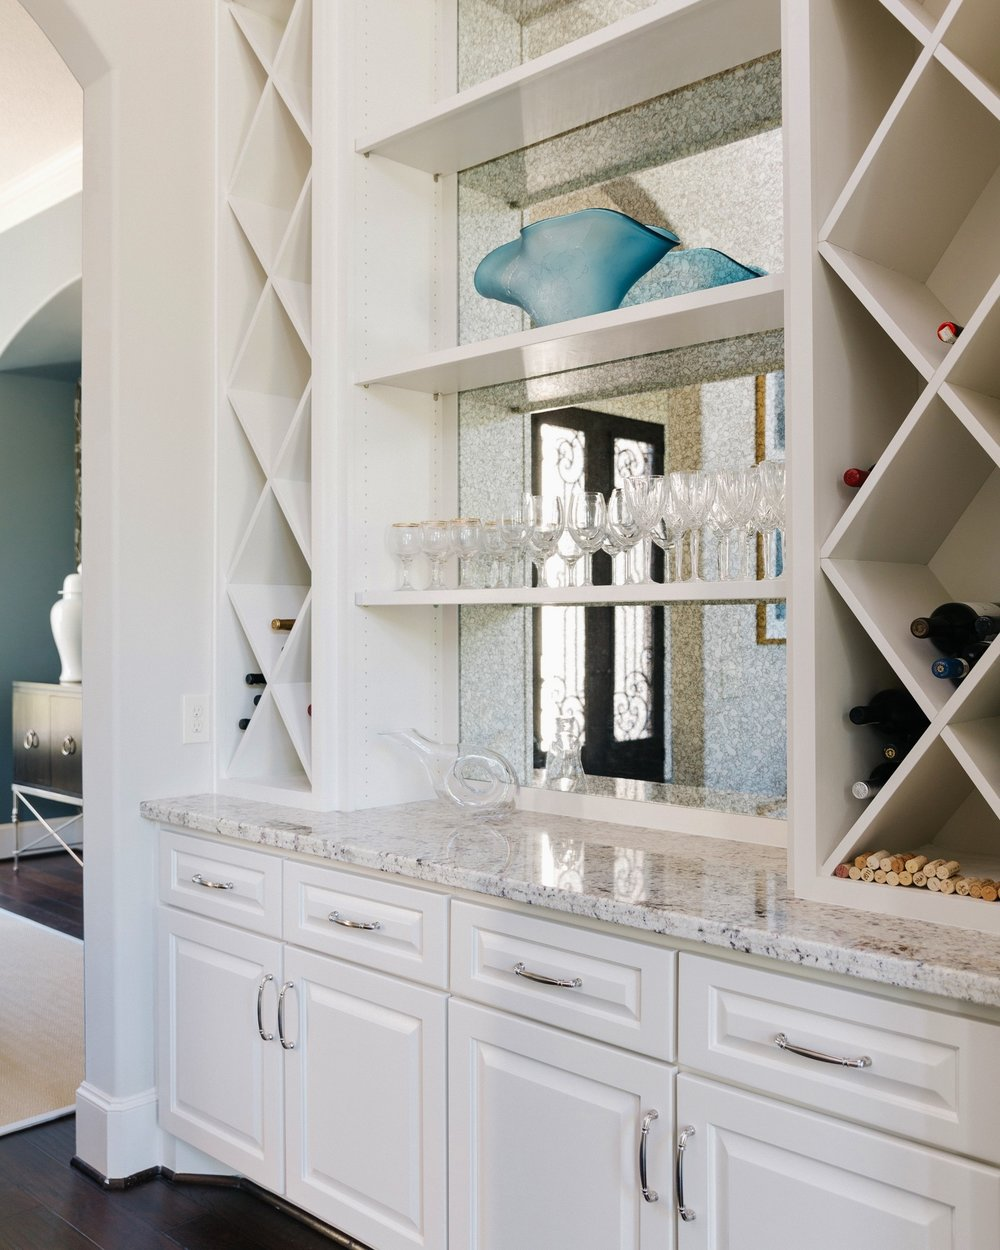 AFTER - Home wine bar transformation, Designer: Carla Aston, Contractor: Shaun Bain, Curb Appeals, Photographer: Colleen Scott | #remodeling #cabinetry #butlerspantry